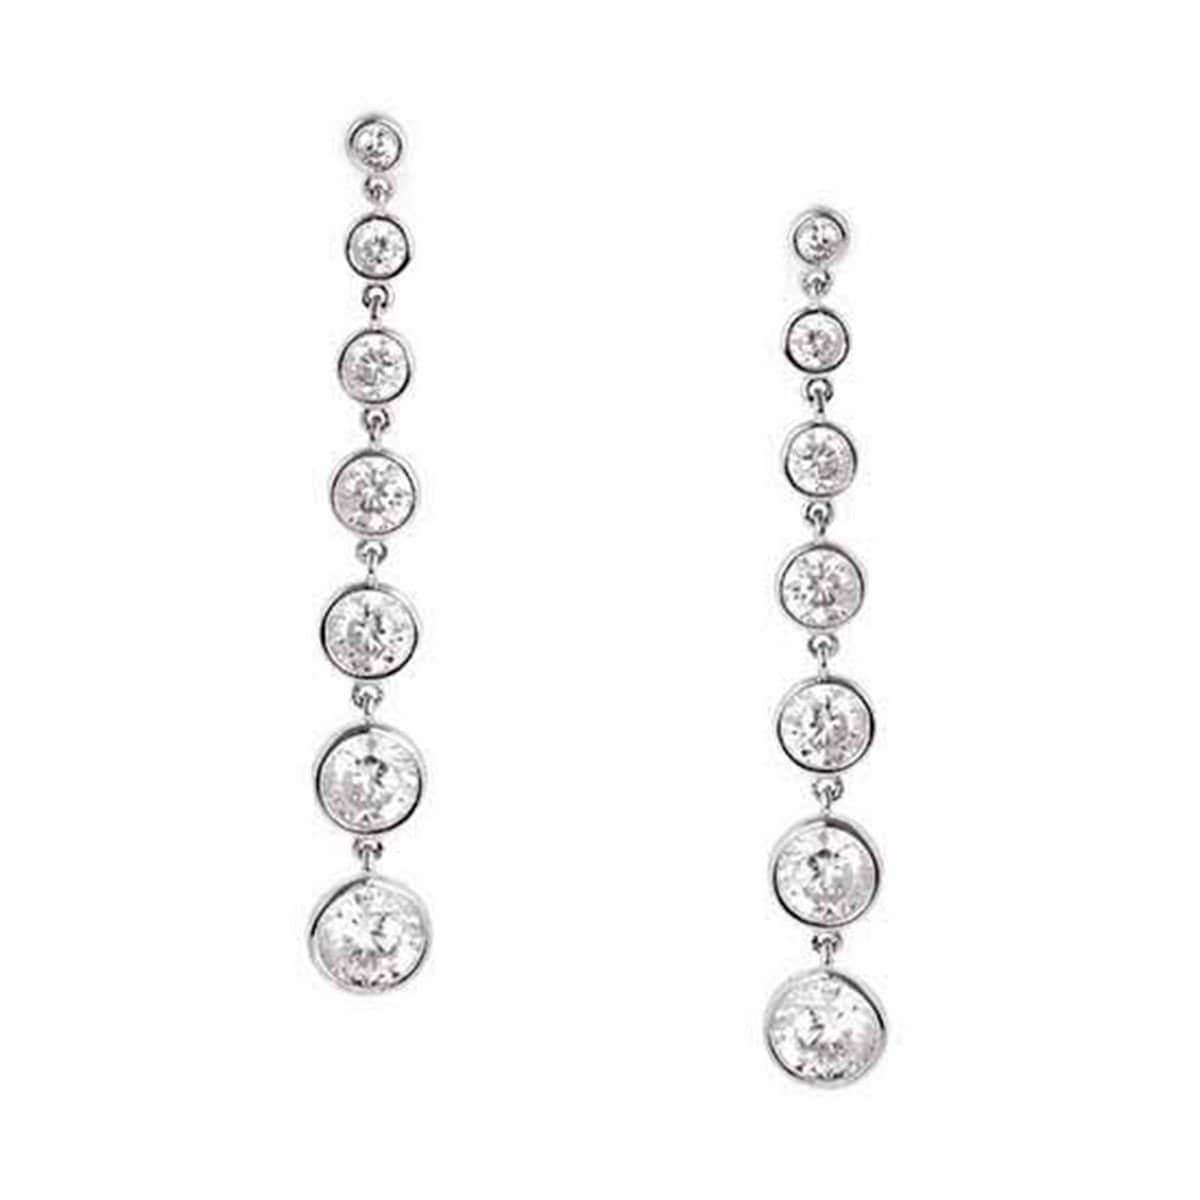 Crislu Jewelry CRISLU Bezel Set 2.9 Carat Drop Earrings Finished in Pure Platinum